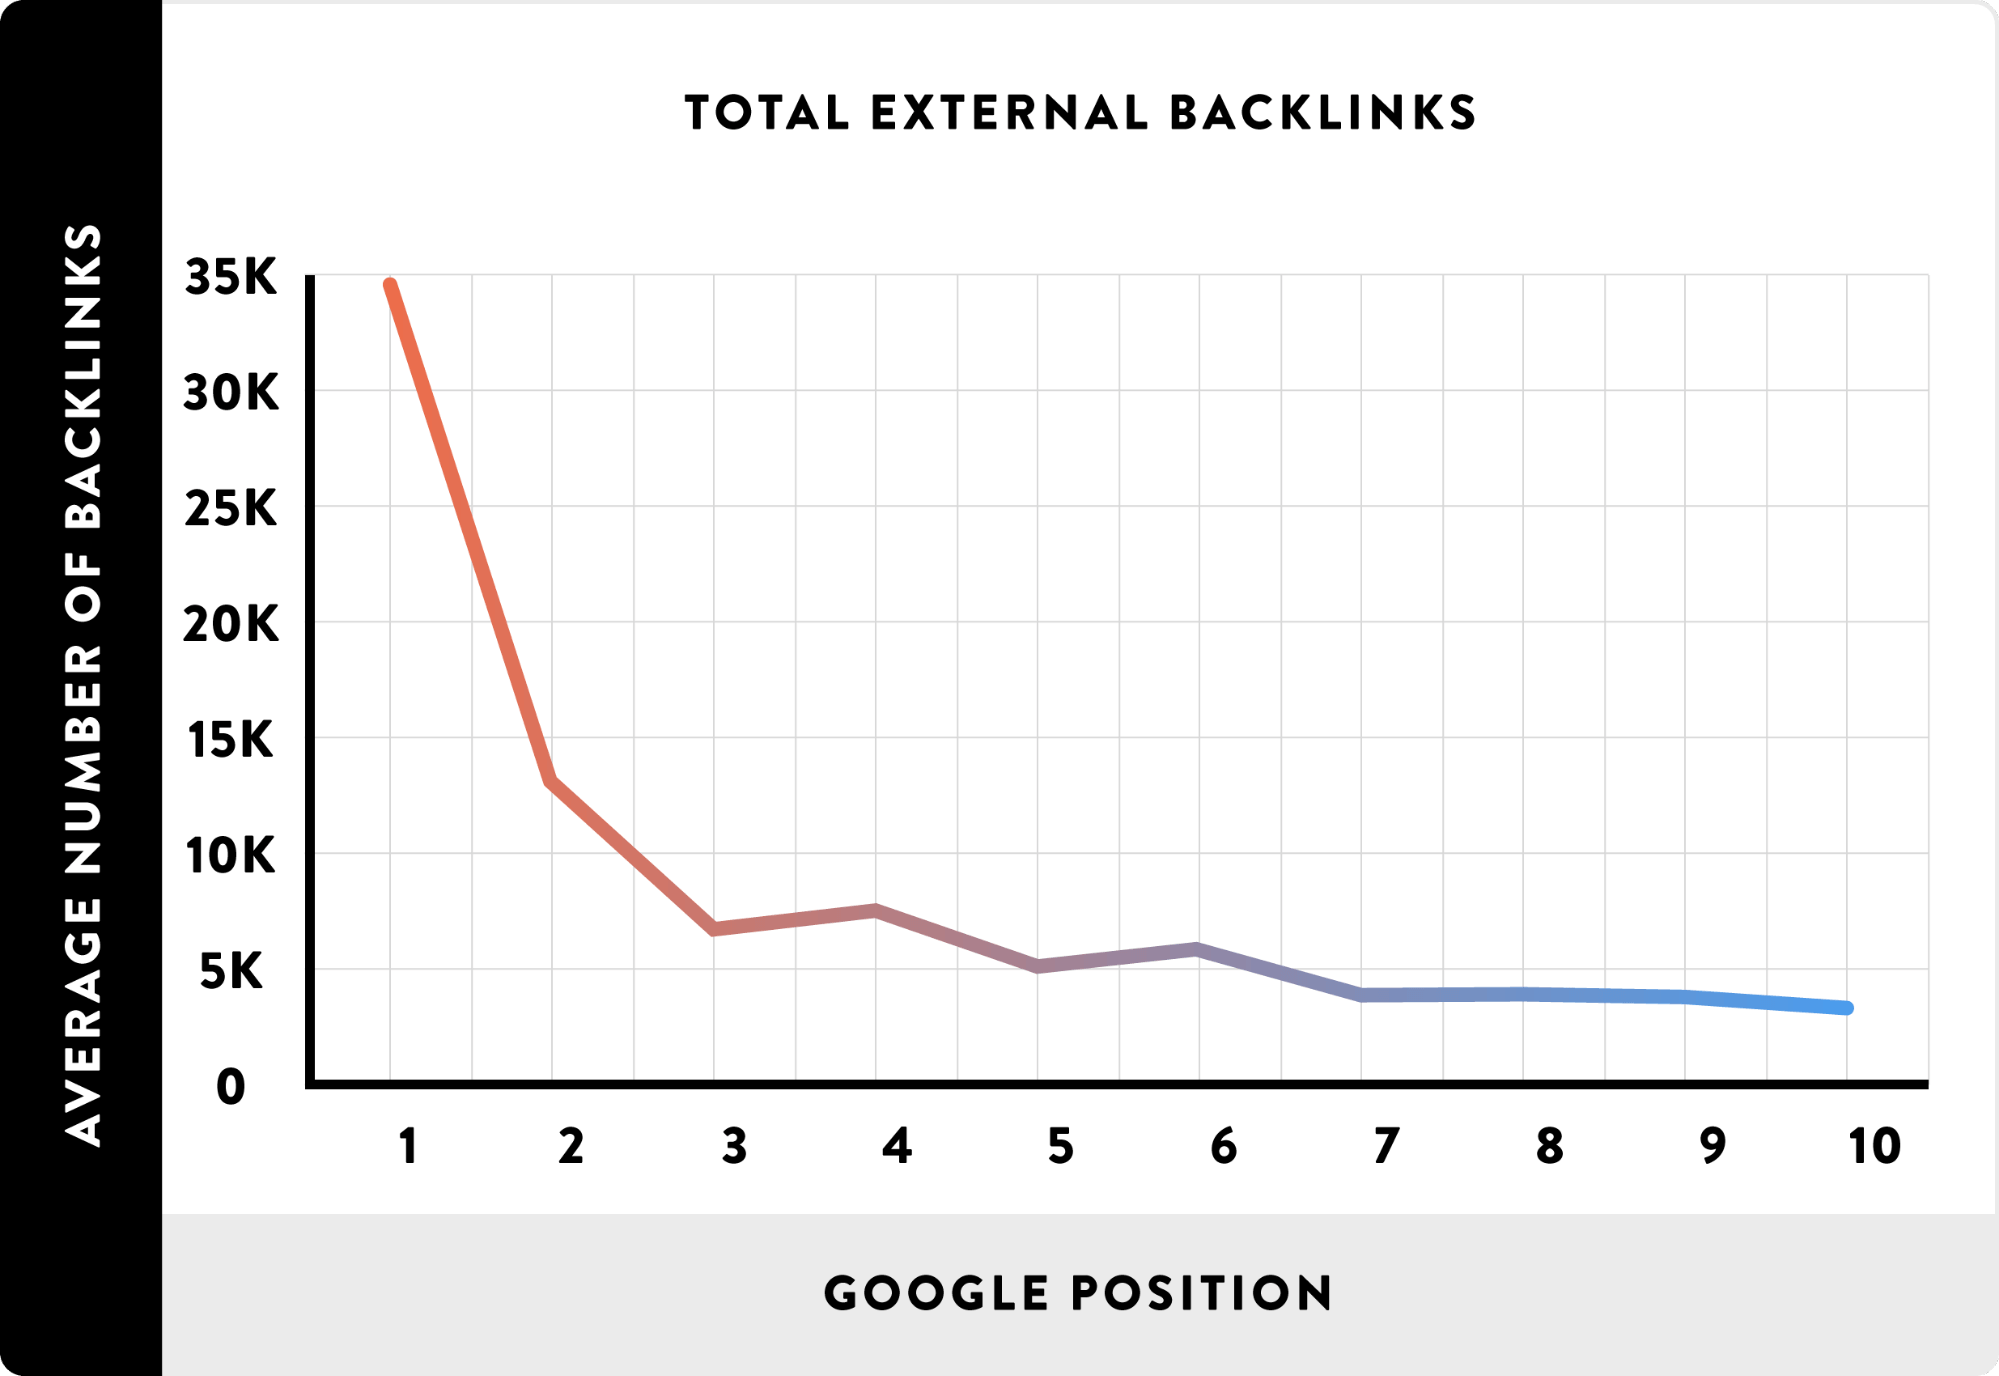 Total-External-Backlinks-and-Google-Position-graph